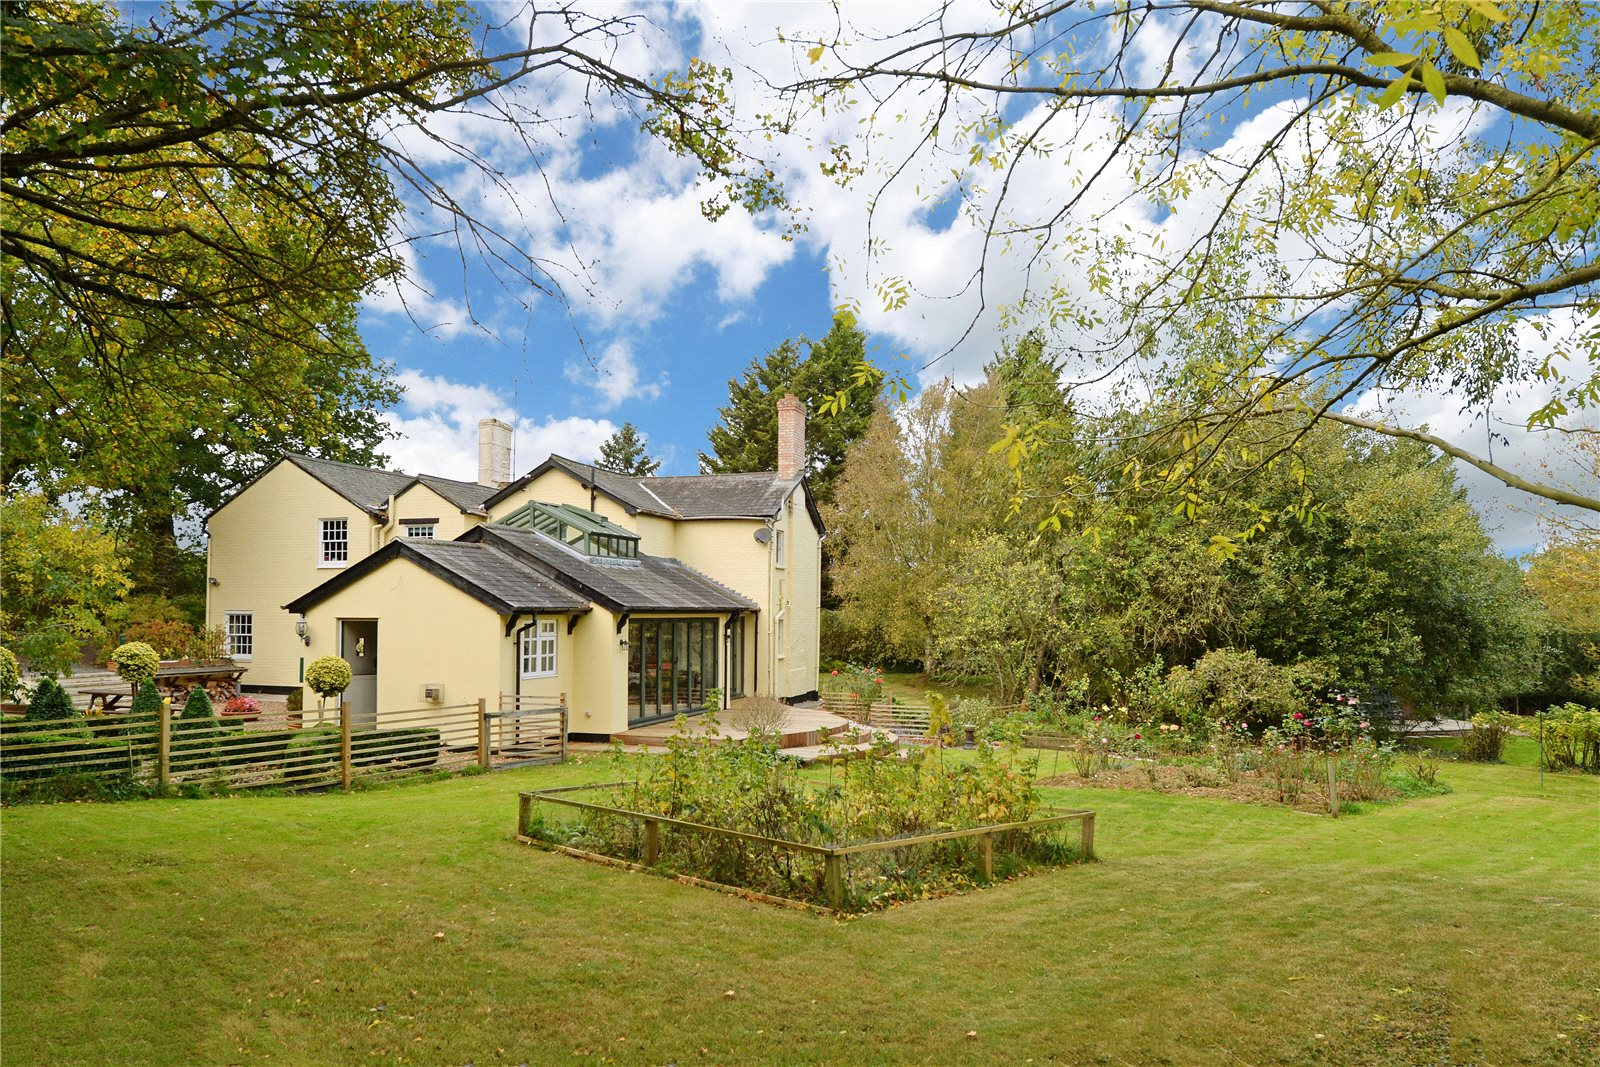 Single Family Home for Sale at Pentlow, Sudbury, Suffolk, CO10 Sudbury, England